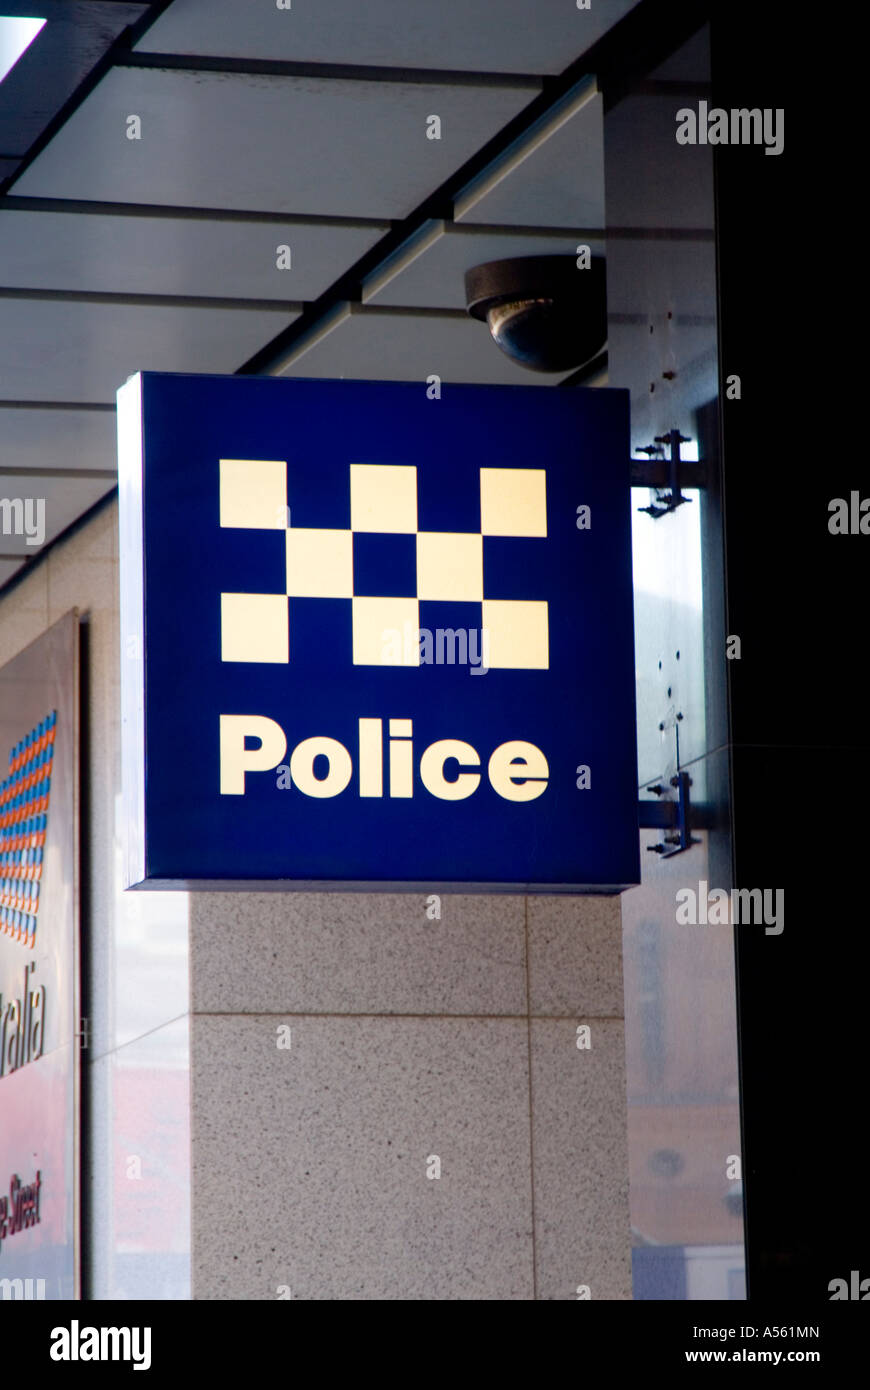 South Australia Police Stock Photos & South Australia Police Stock